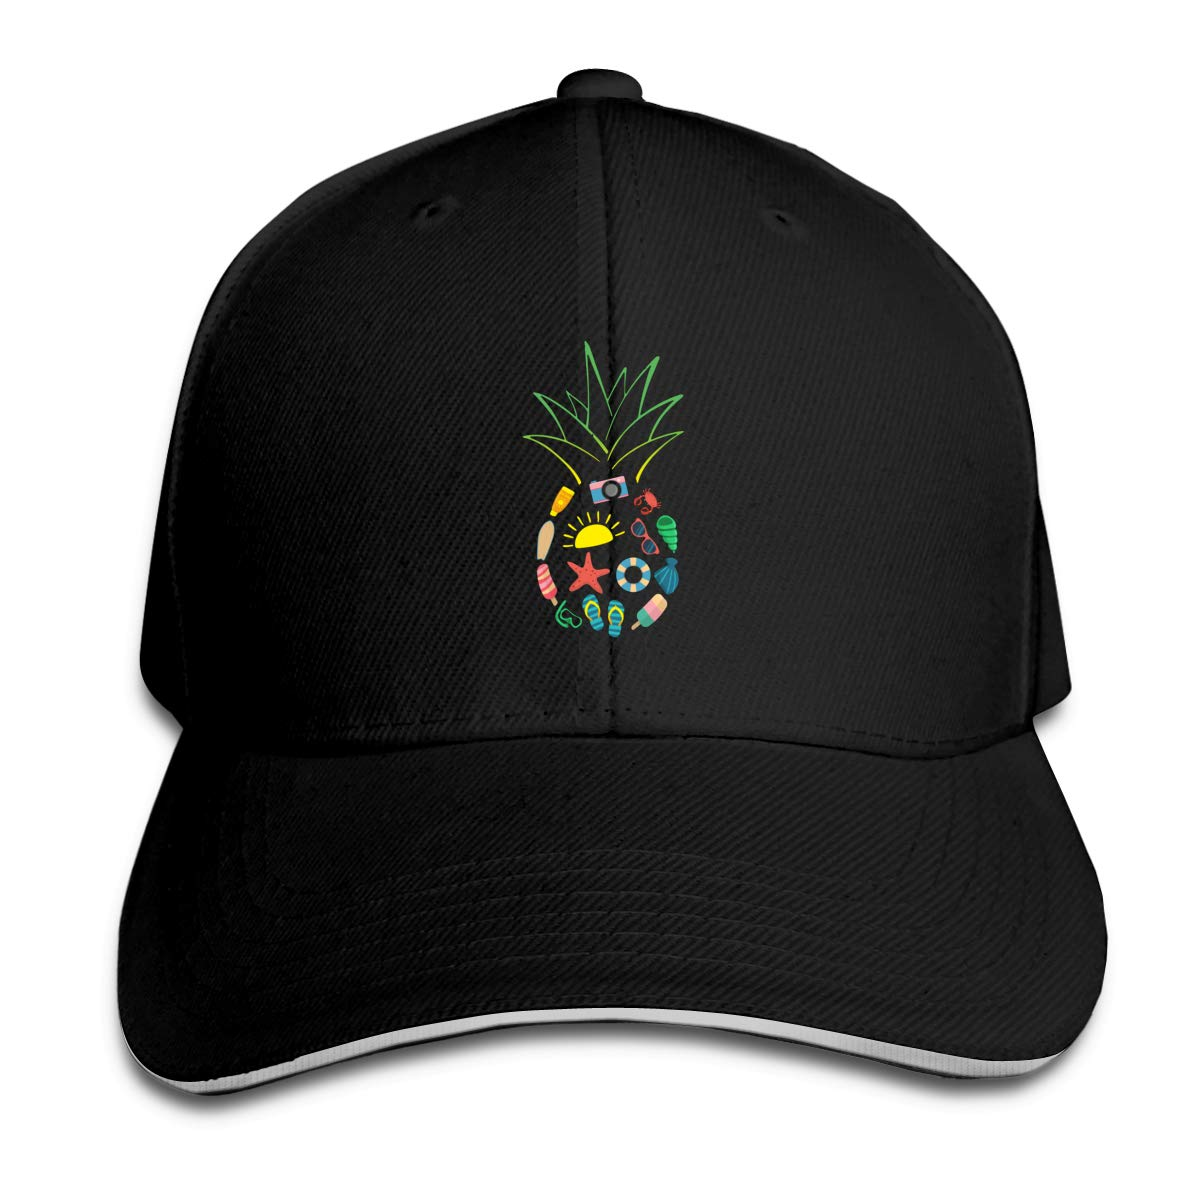 Pineapple Beach Summer Outdoor Snapback Sandwich Cap Adjustable Baseball Hat Trucker Cap